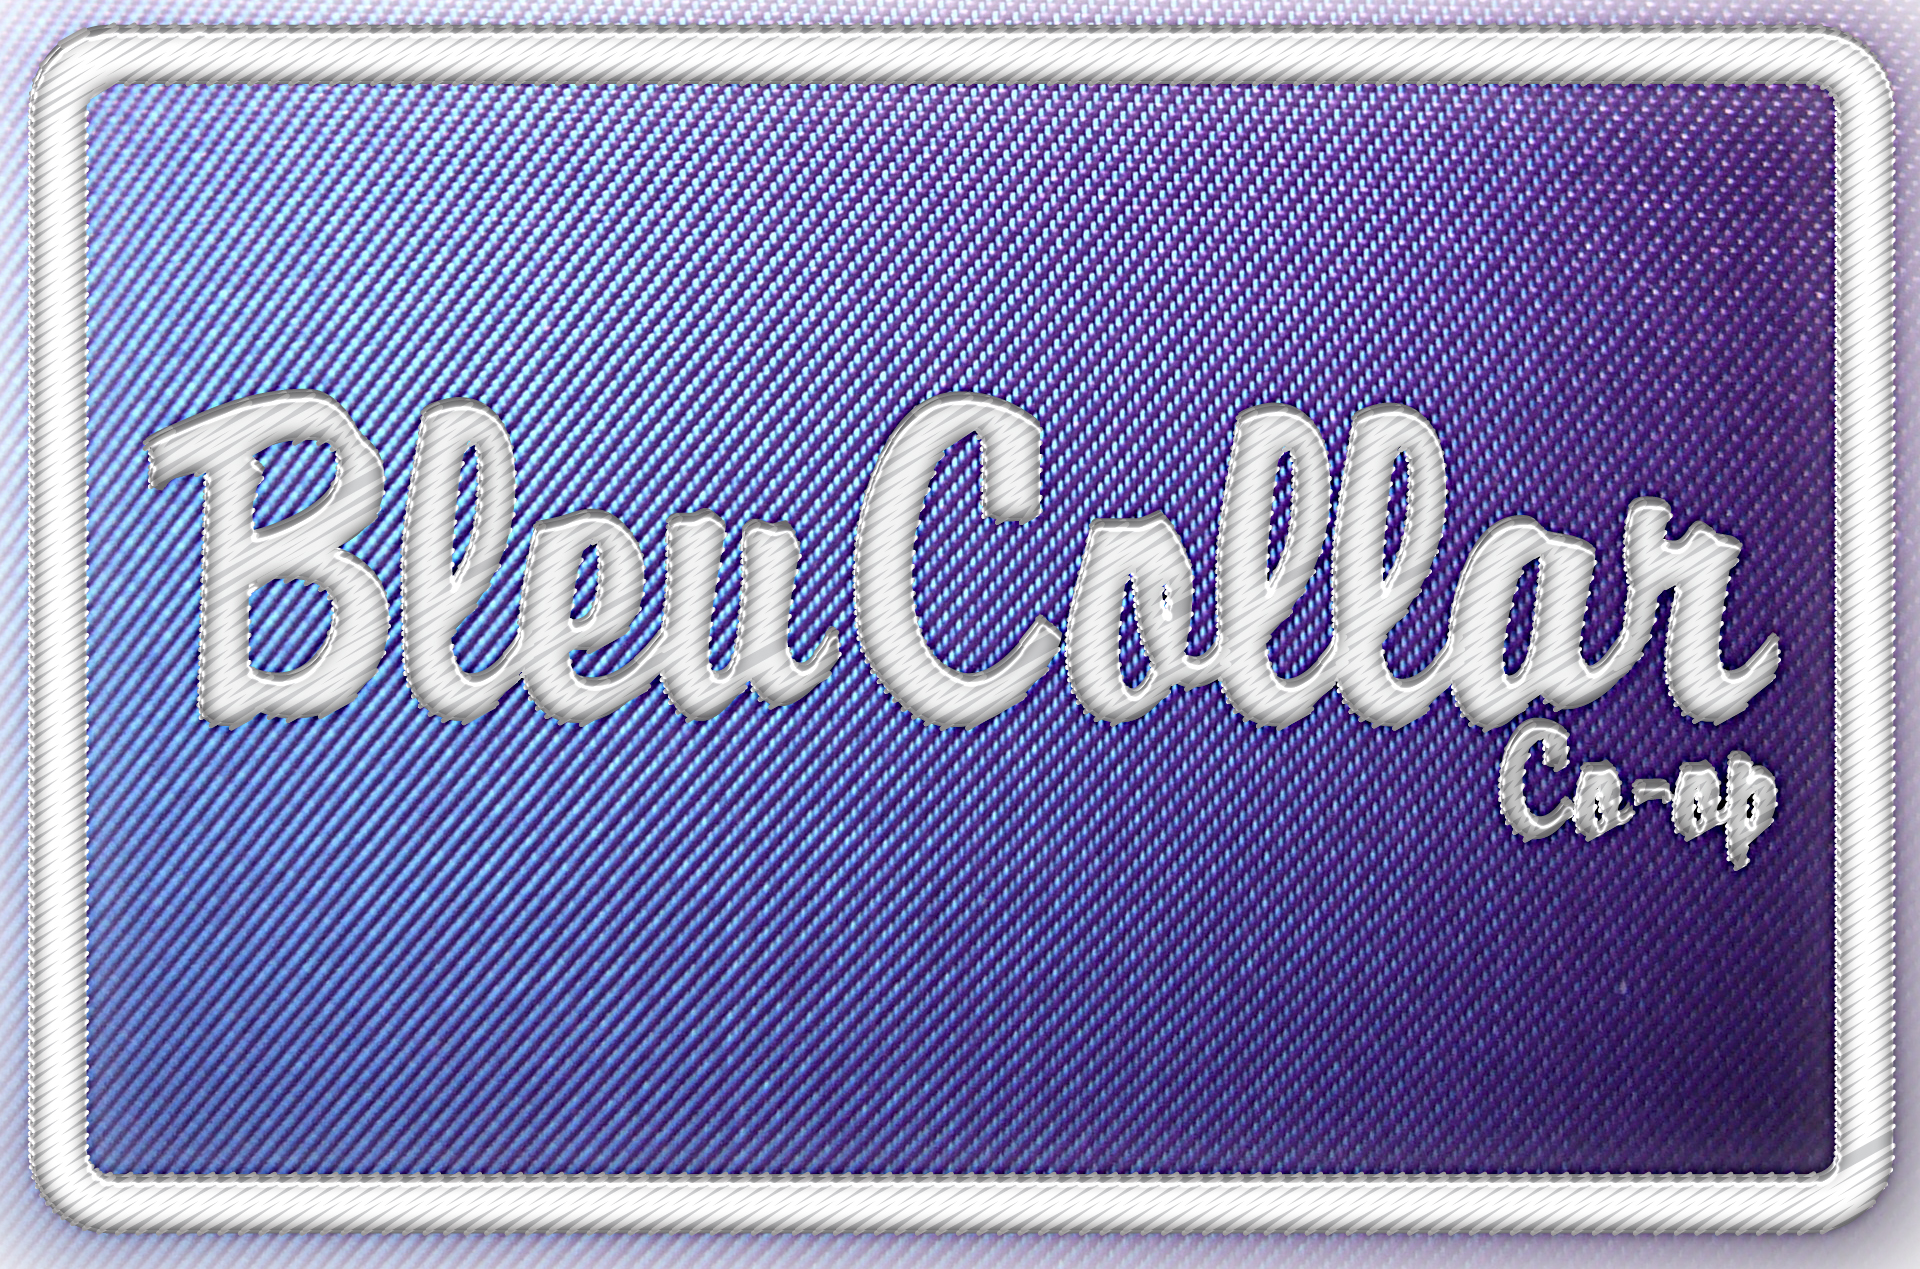 BLEU COLLAR CO-OP